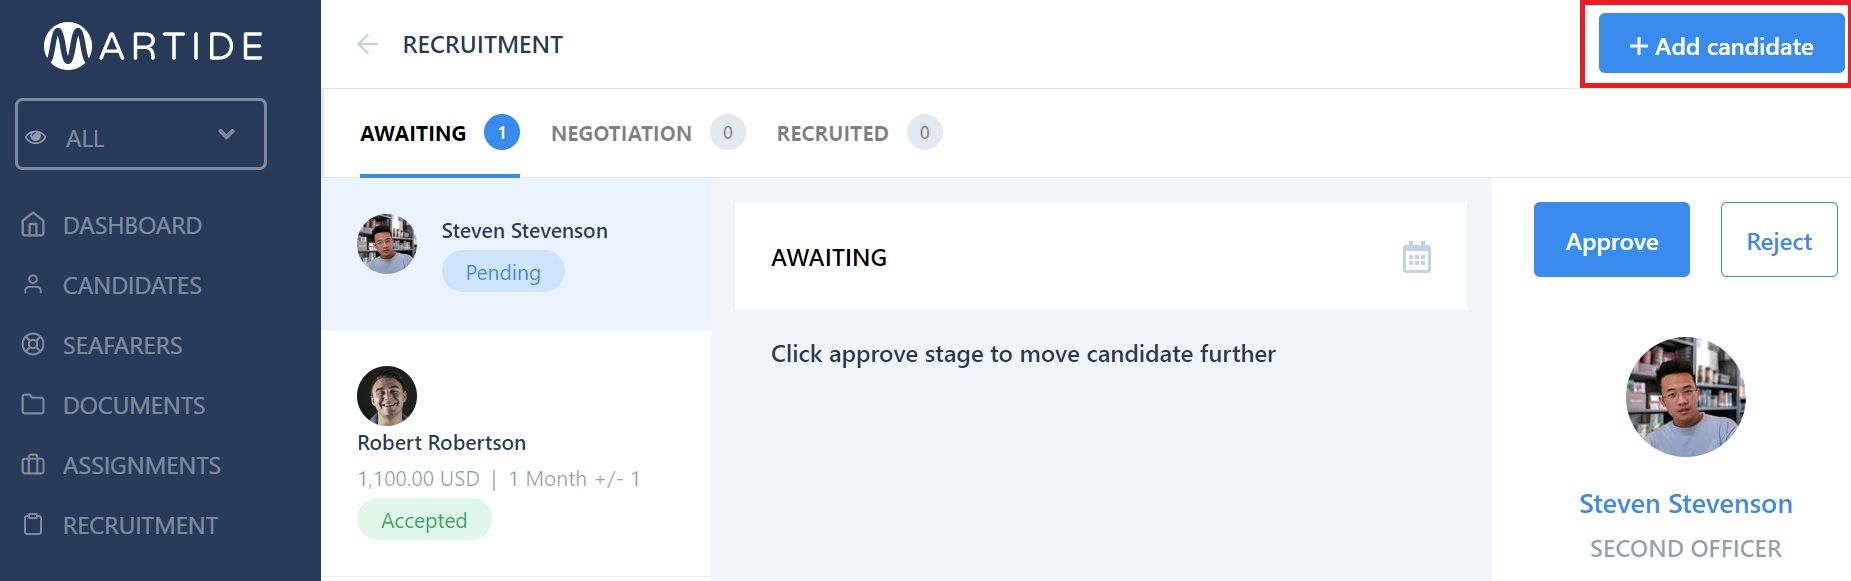 screenshot showing the add candidate button